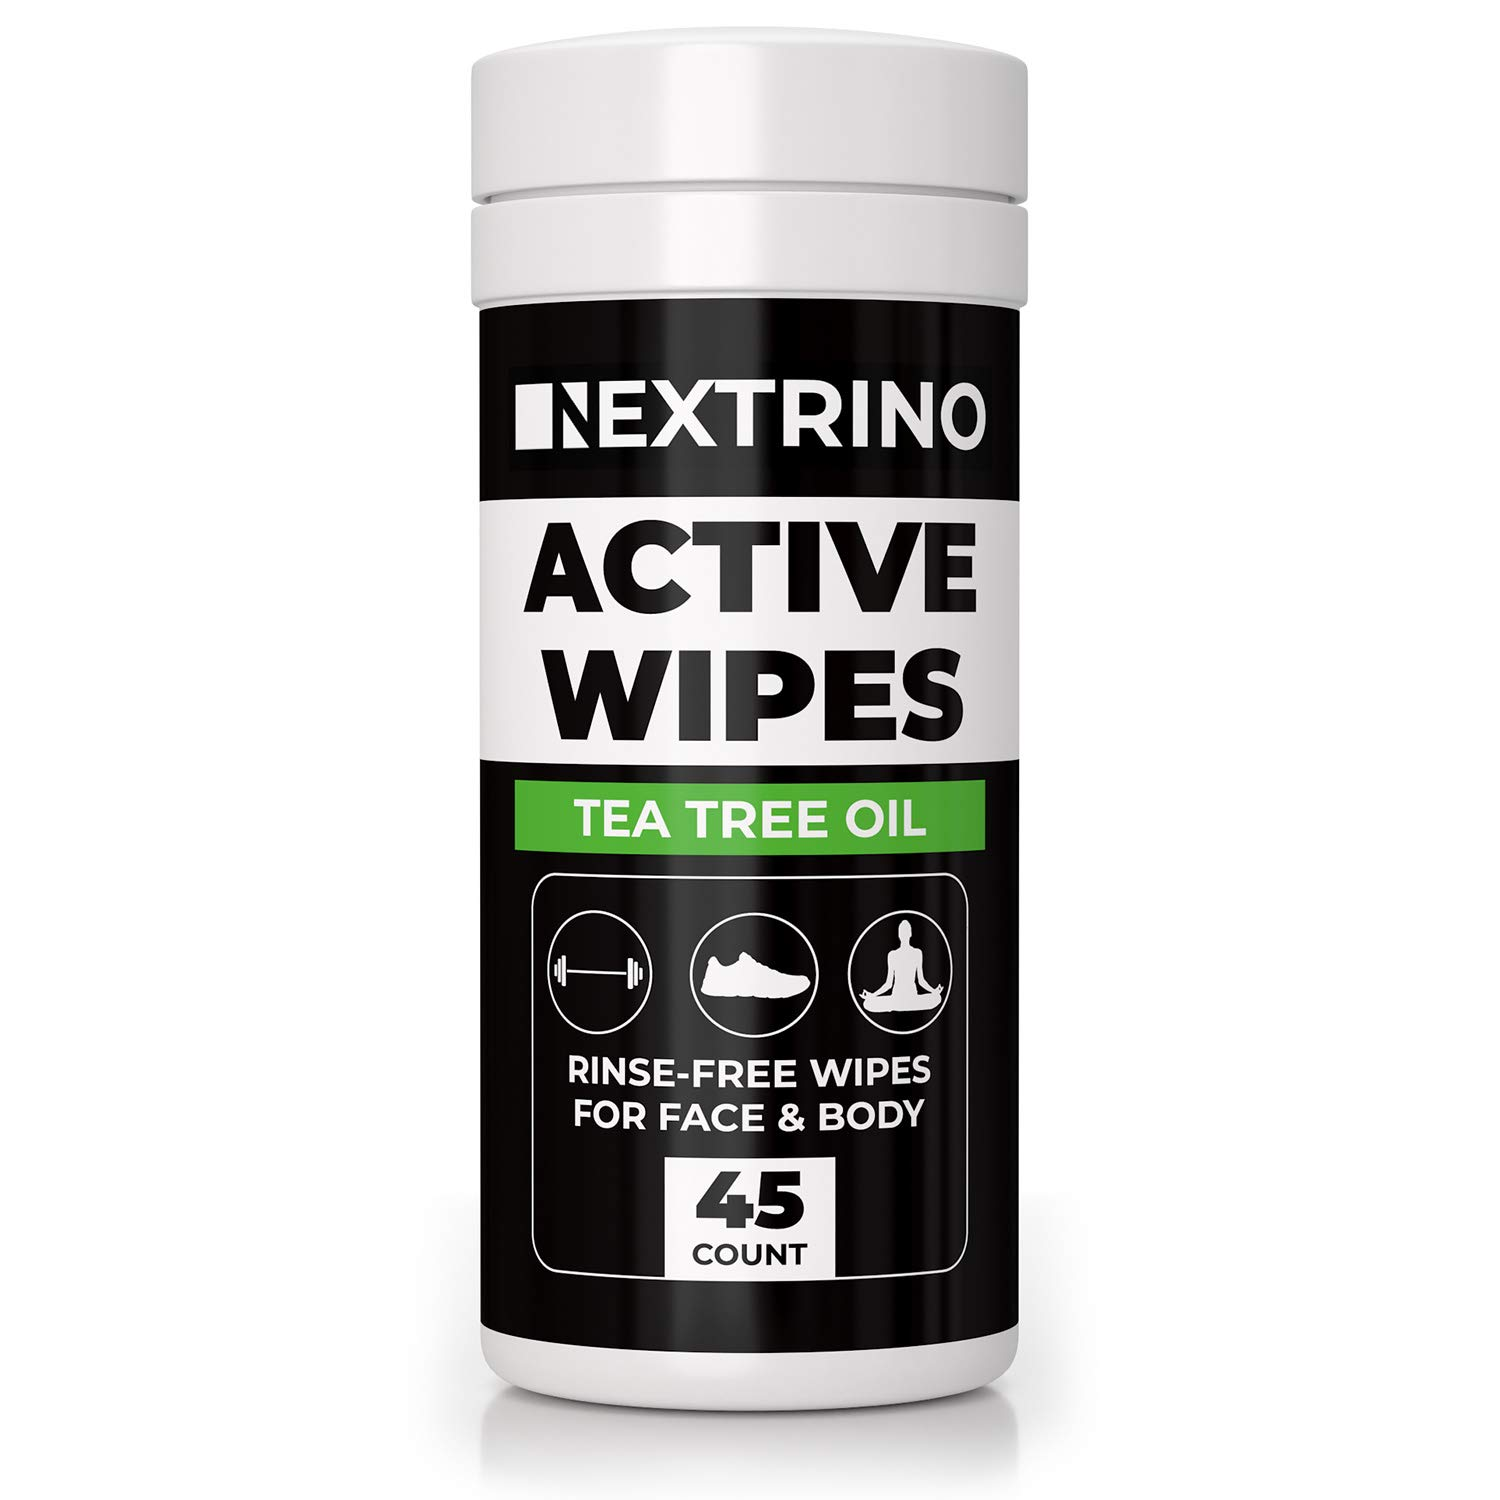 Tea Tree Oil Active Wipes [45 Ct] Cleansing Face and Body Wipe for Men and Women - Biodegradable & Rinse Free: No Shower, No Bath, No Problem - Gym Friendly Travel Container by Nextrino